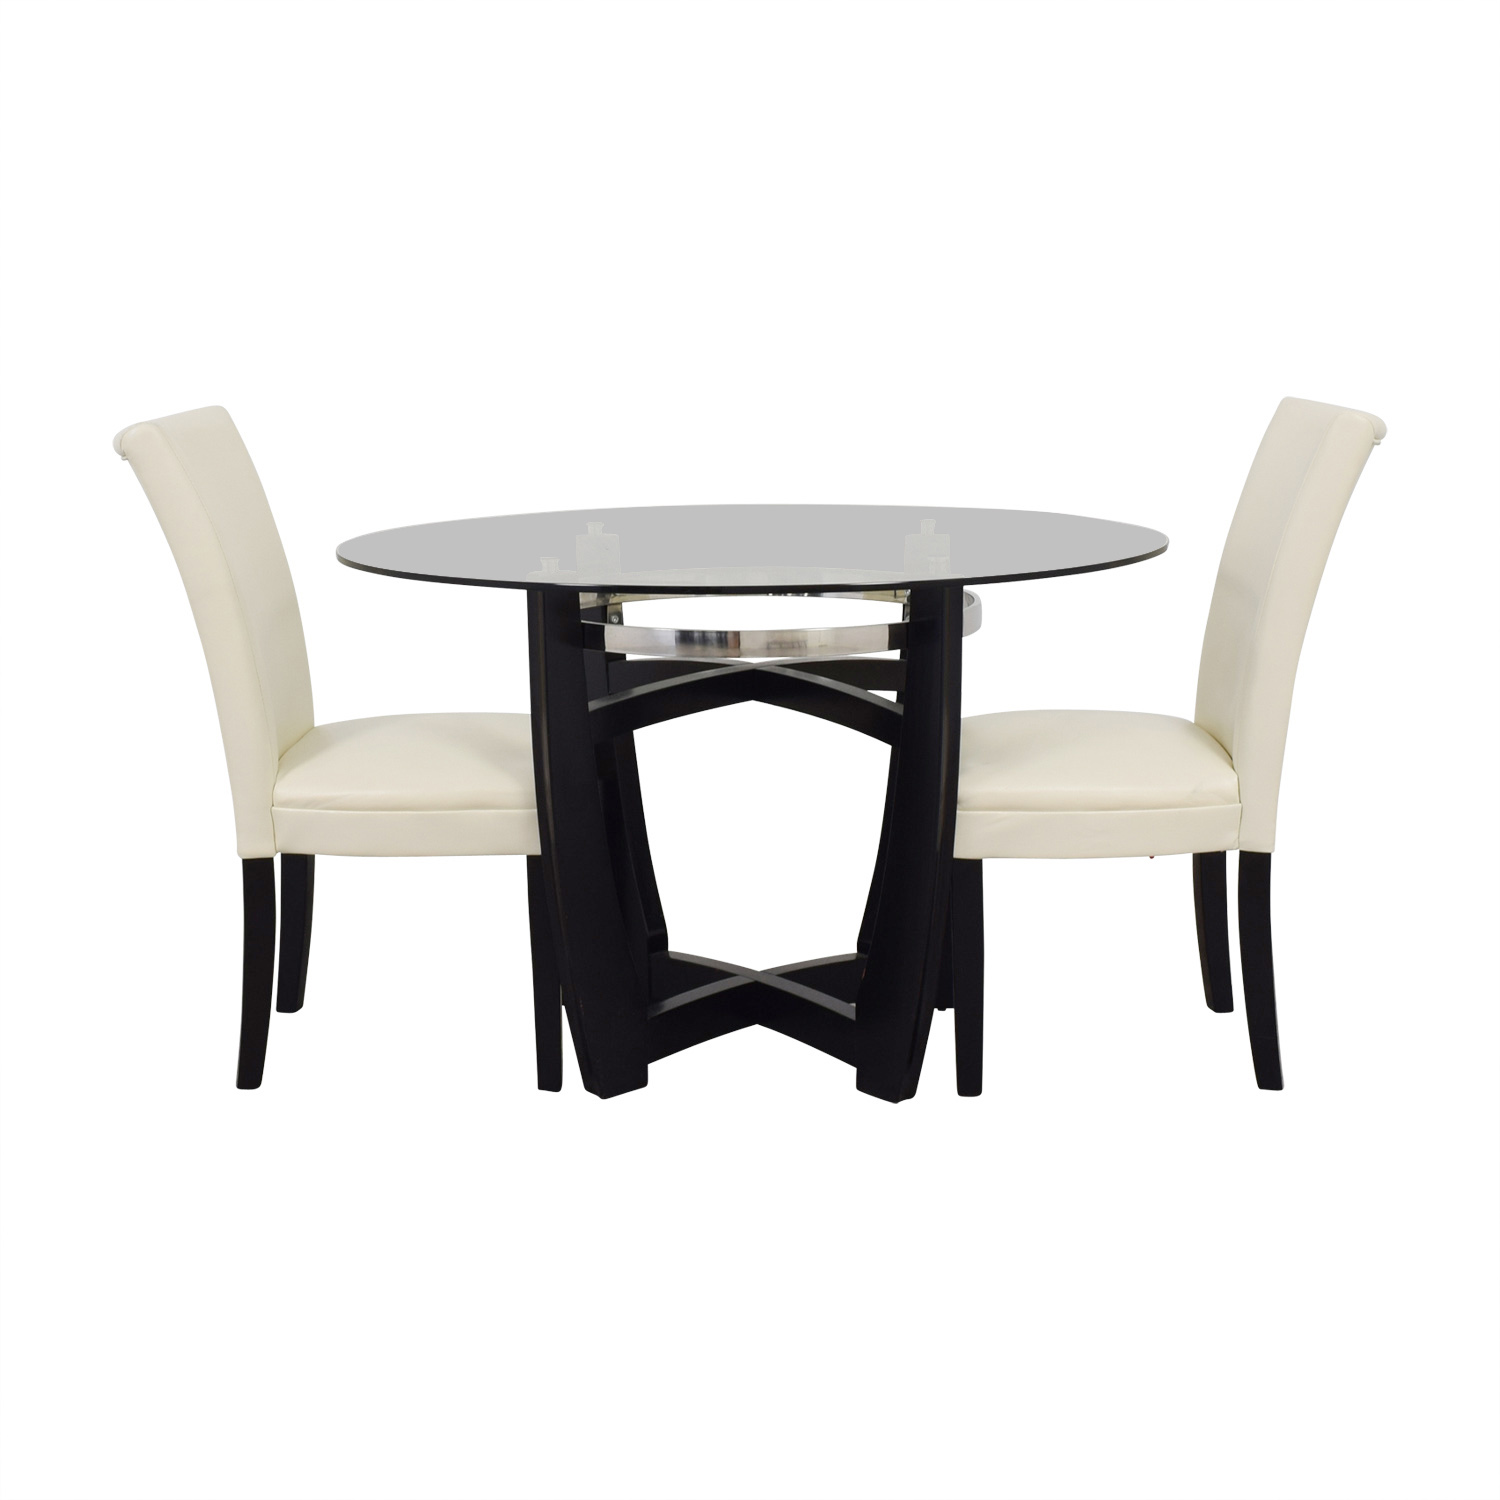 shop Bob's Furniture Bob Furniture Round Glass Table and White Chairs online